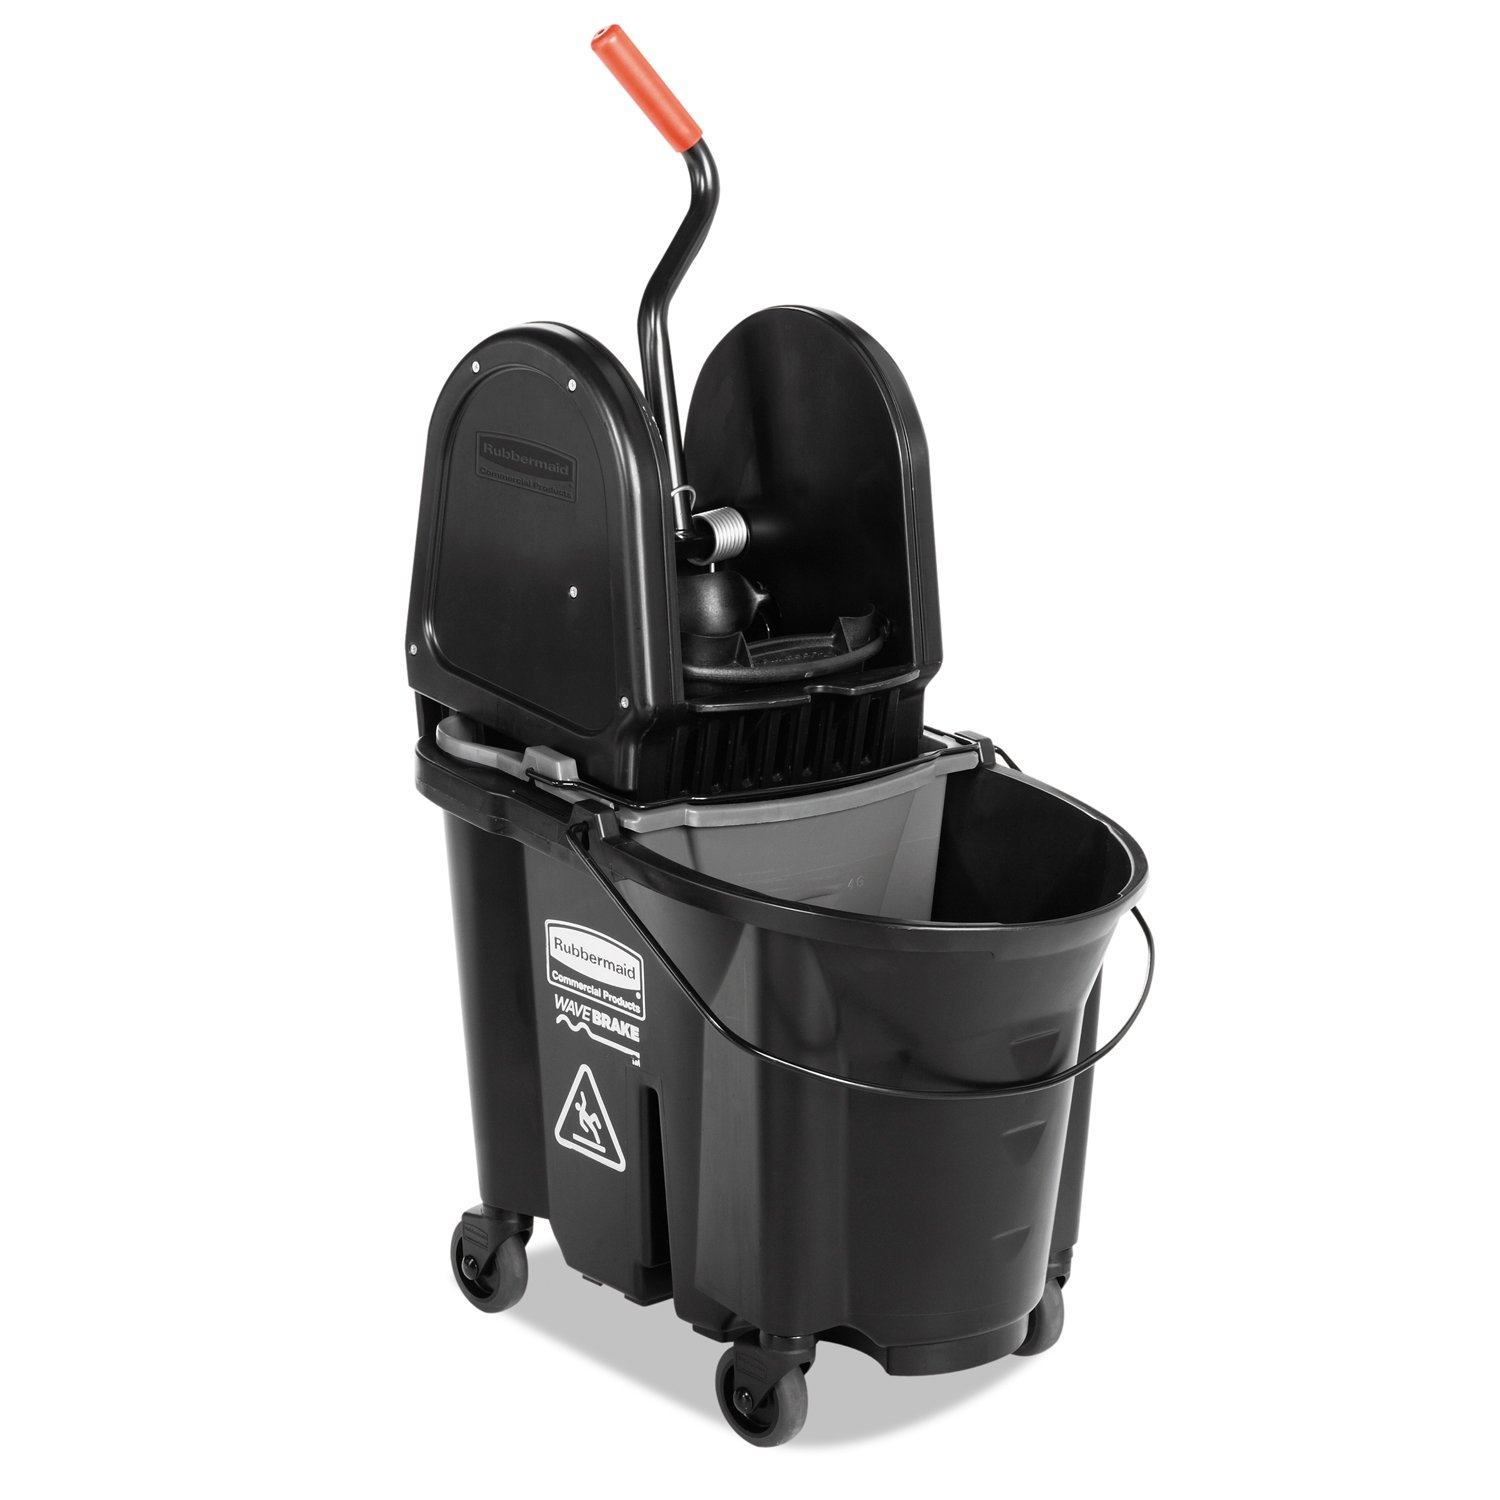 Image of Home and Kitchen Rubbermaid Commercial WaveBrake 2.0 35 QT Down-Press Mop Bucket and Wringer, Black (1863898)